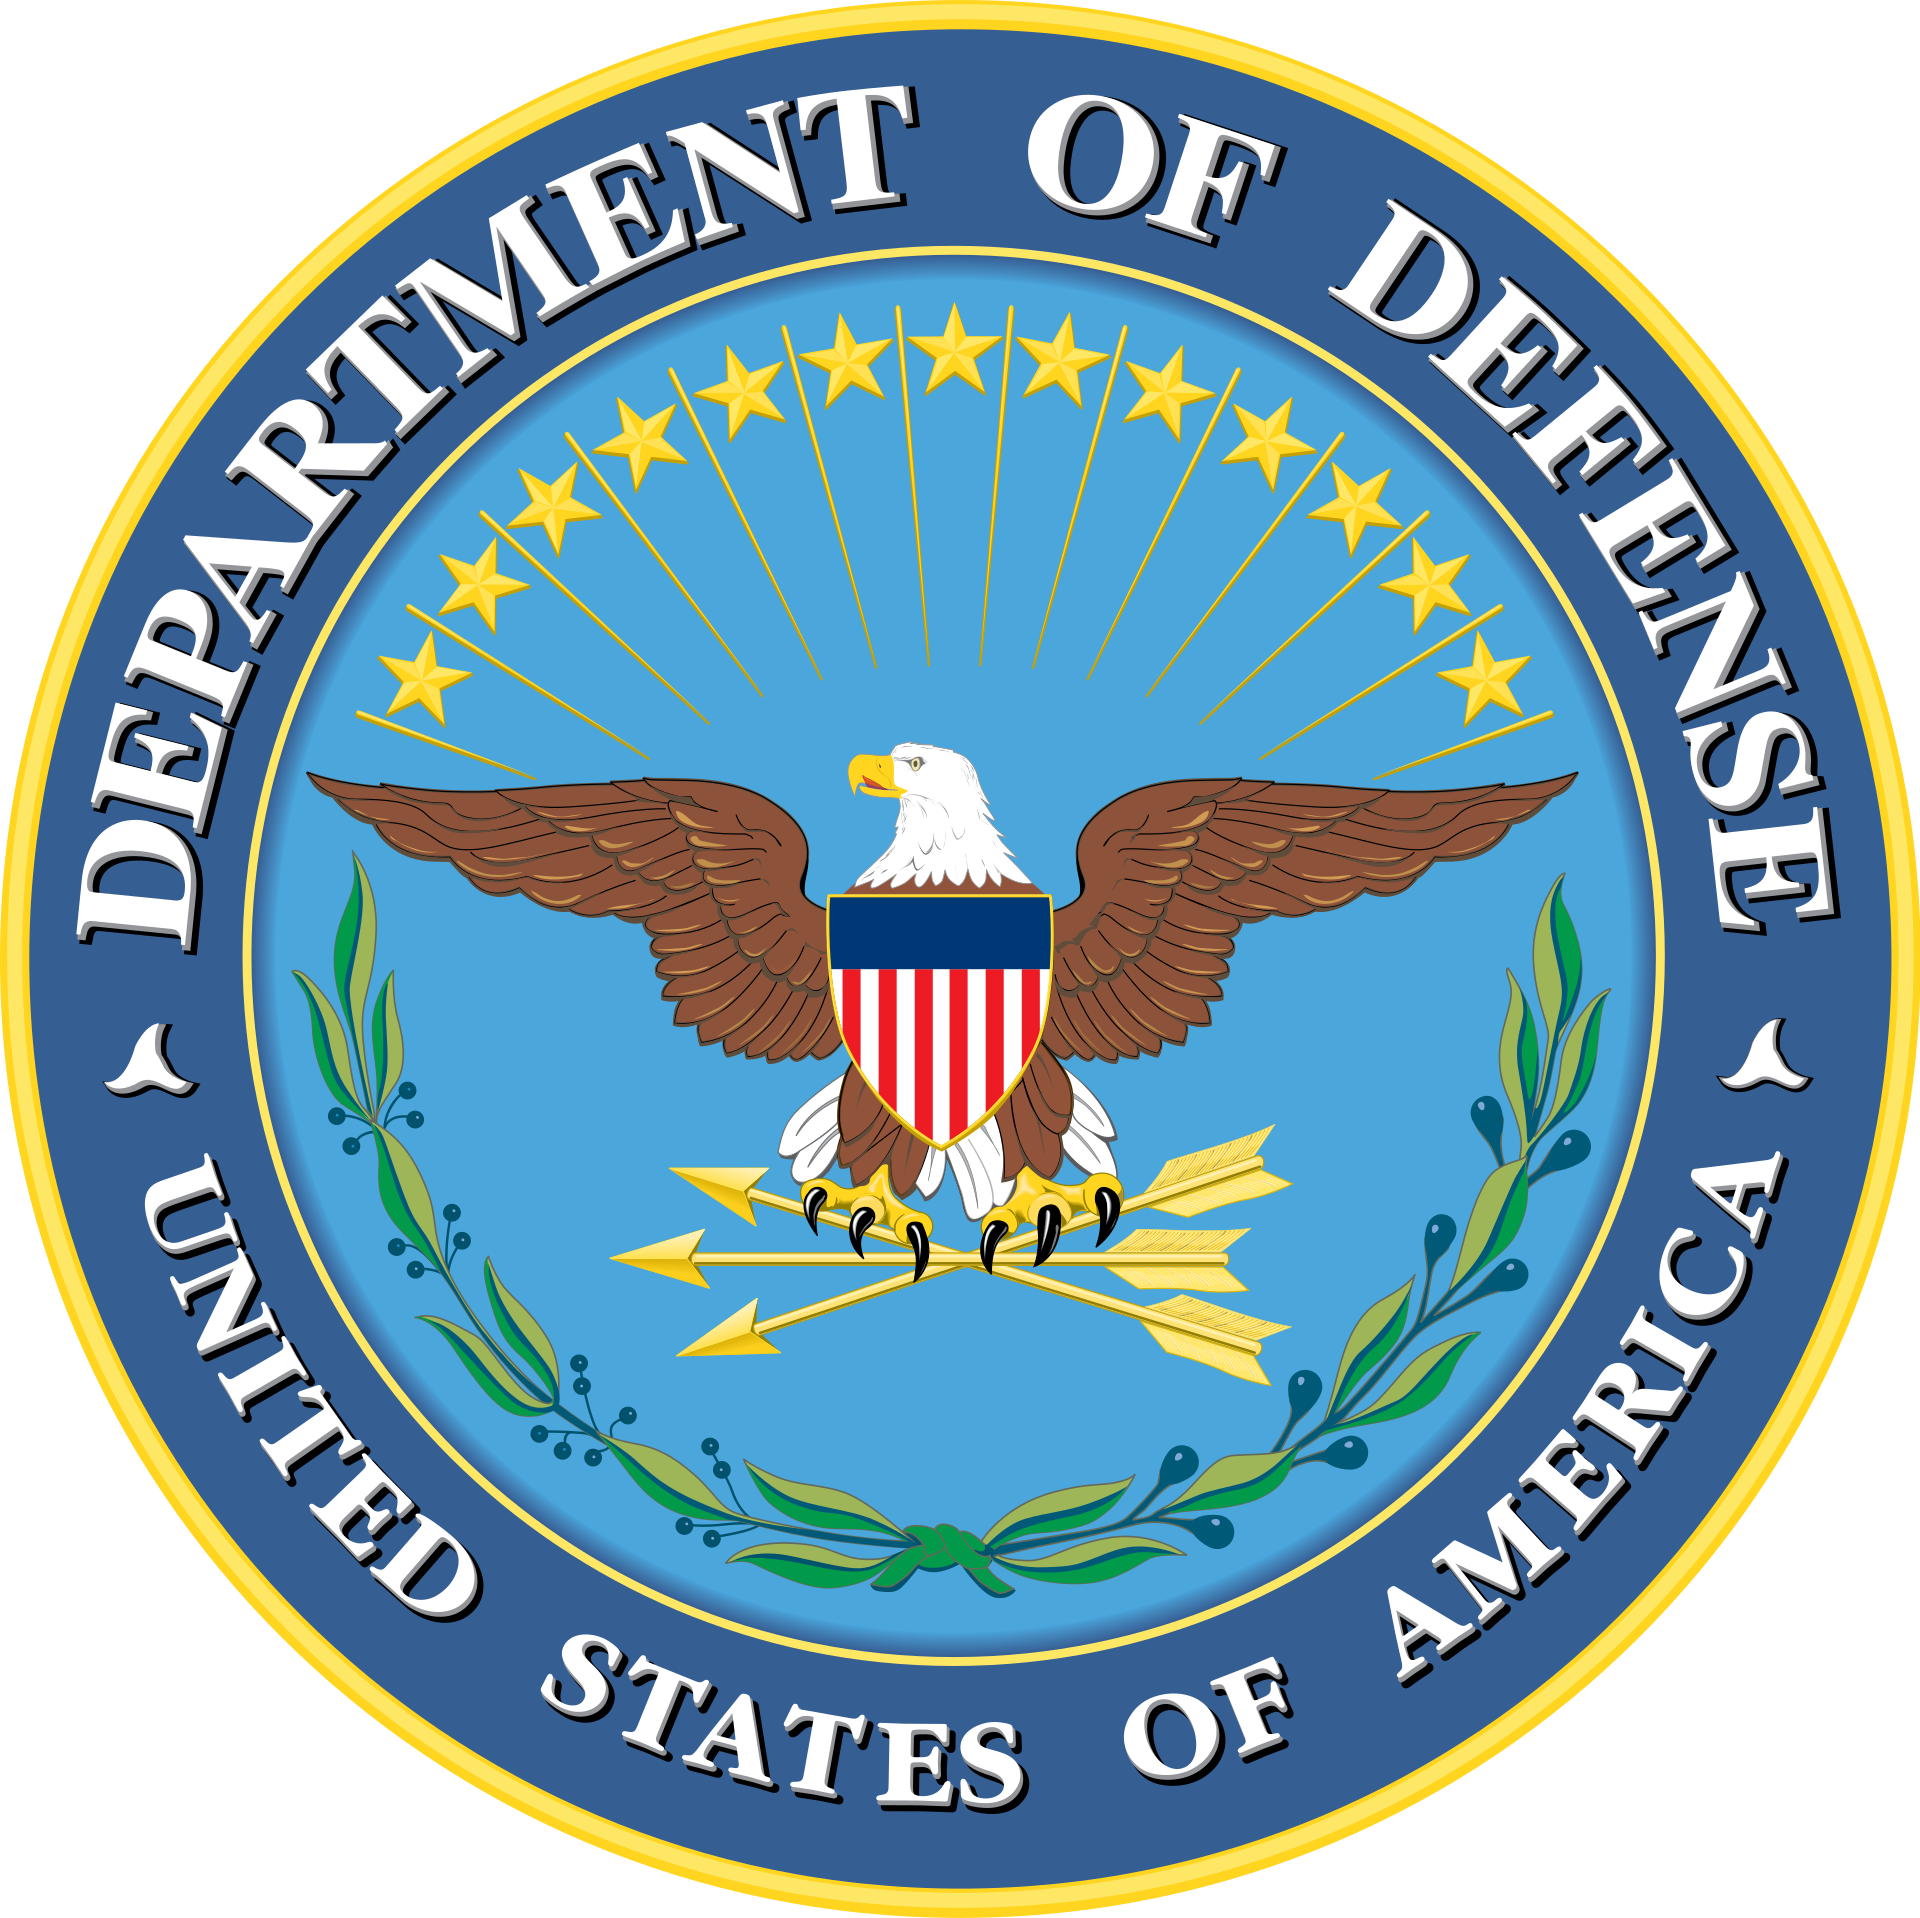 United States Department of Defense since 1947 (DoD